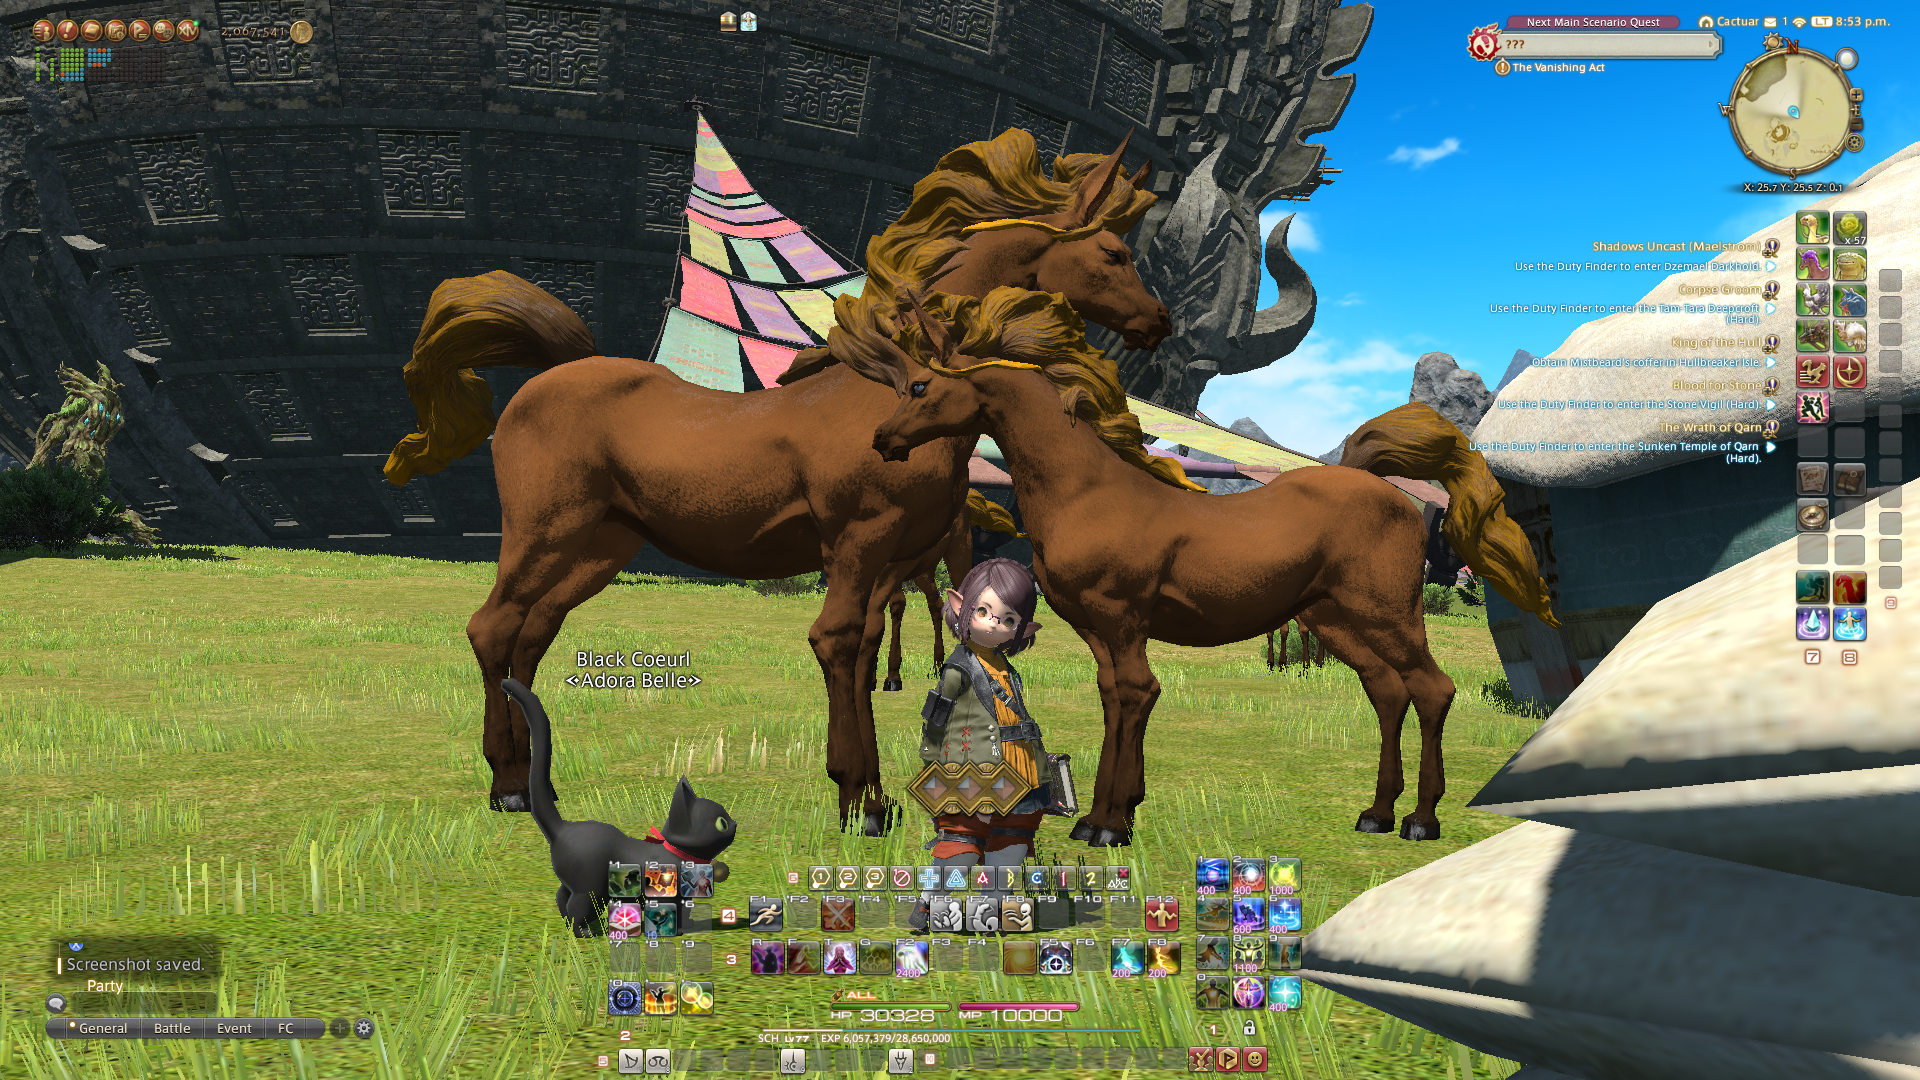 A screenshot from the video game Final Fantasy XIV showing the author's character, a female halfling in a green coat, standing in a grassy field by some horses